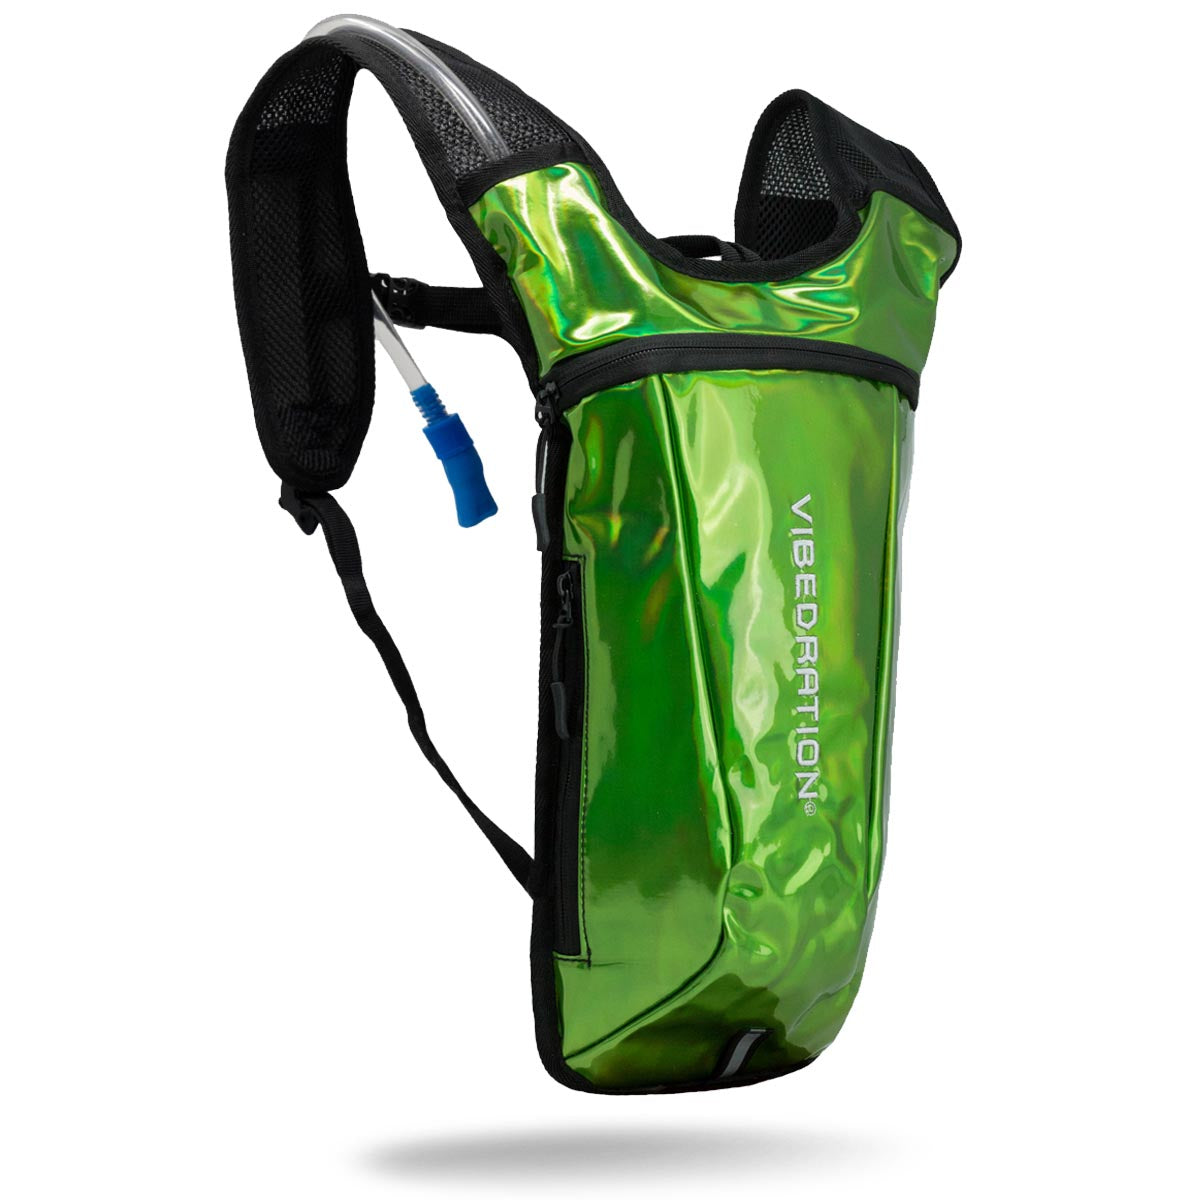 alien green holographic hydration pack for raves